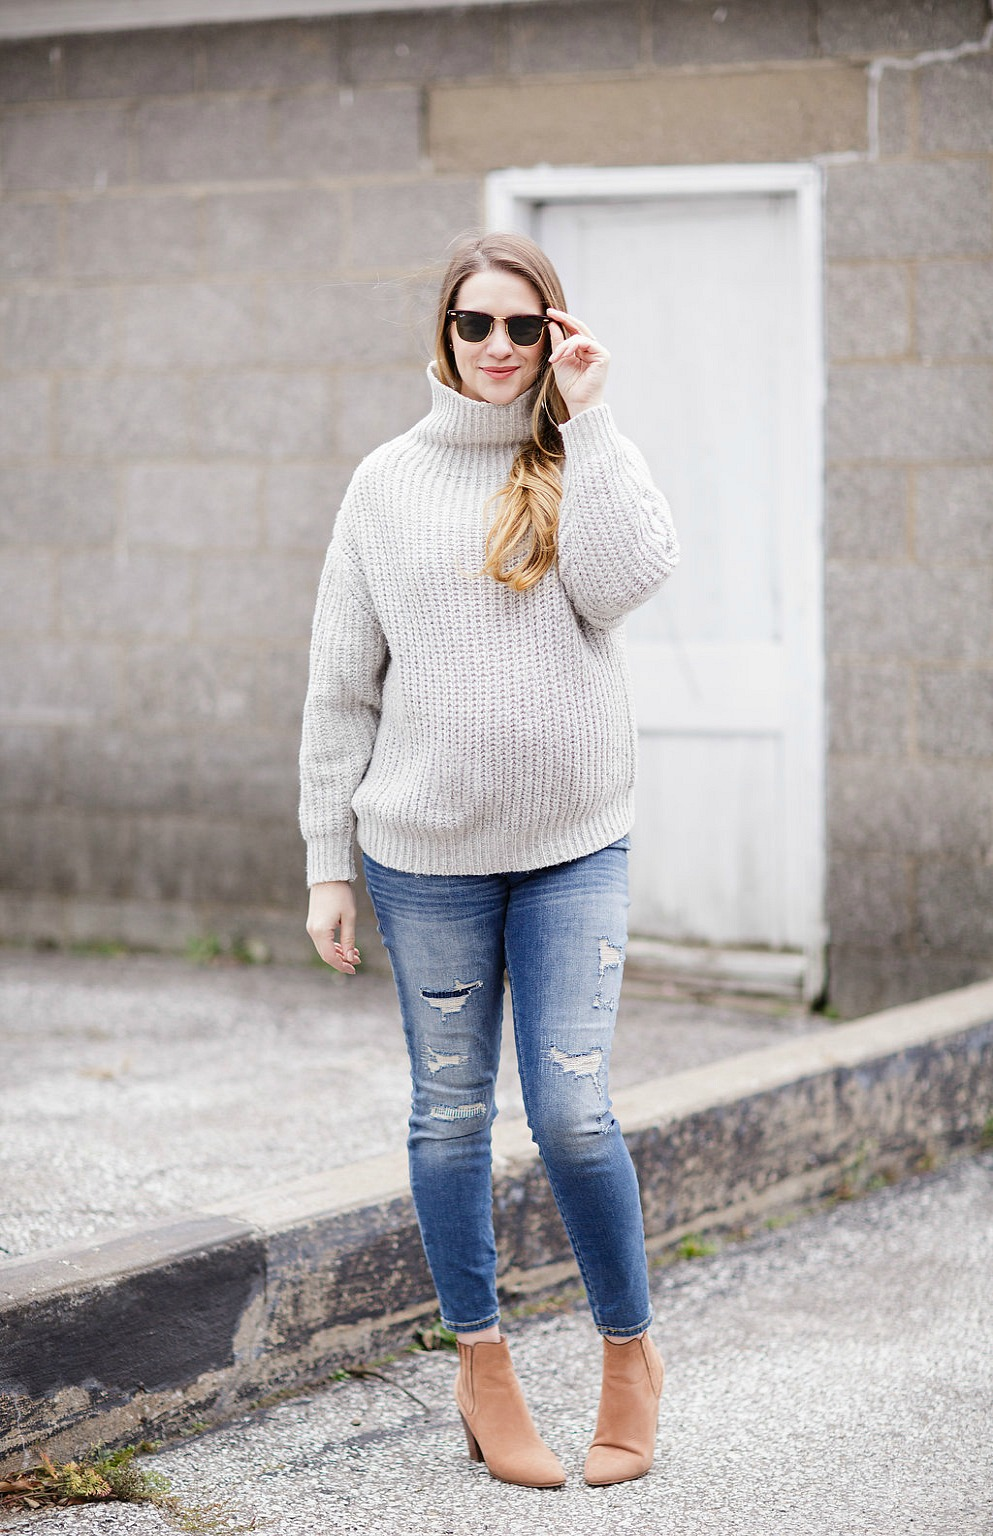 ray-ban-clubmaster-sunglasses-rose-city-style-guide-fall-fashion-giveaway-canadian-blogger-maternity-outfit-maternity-style-smart-buy-glasses-10